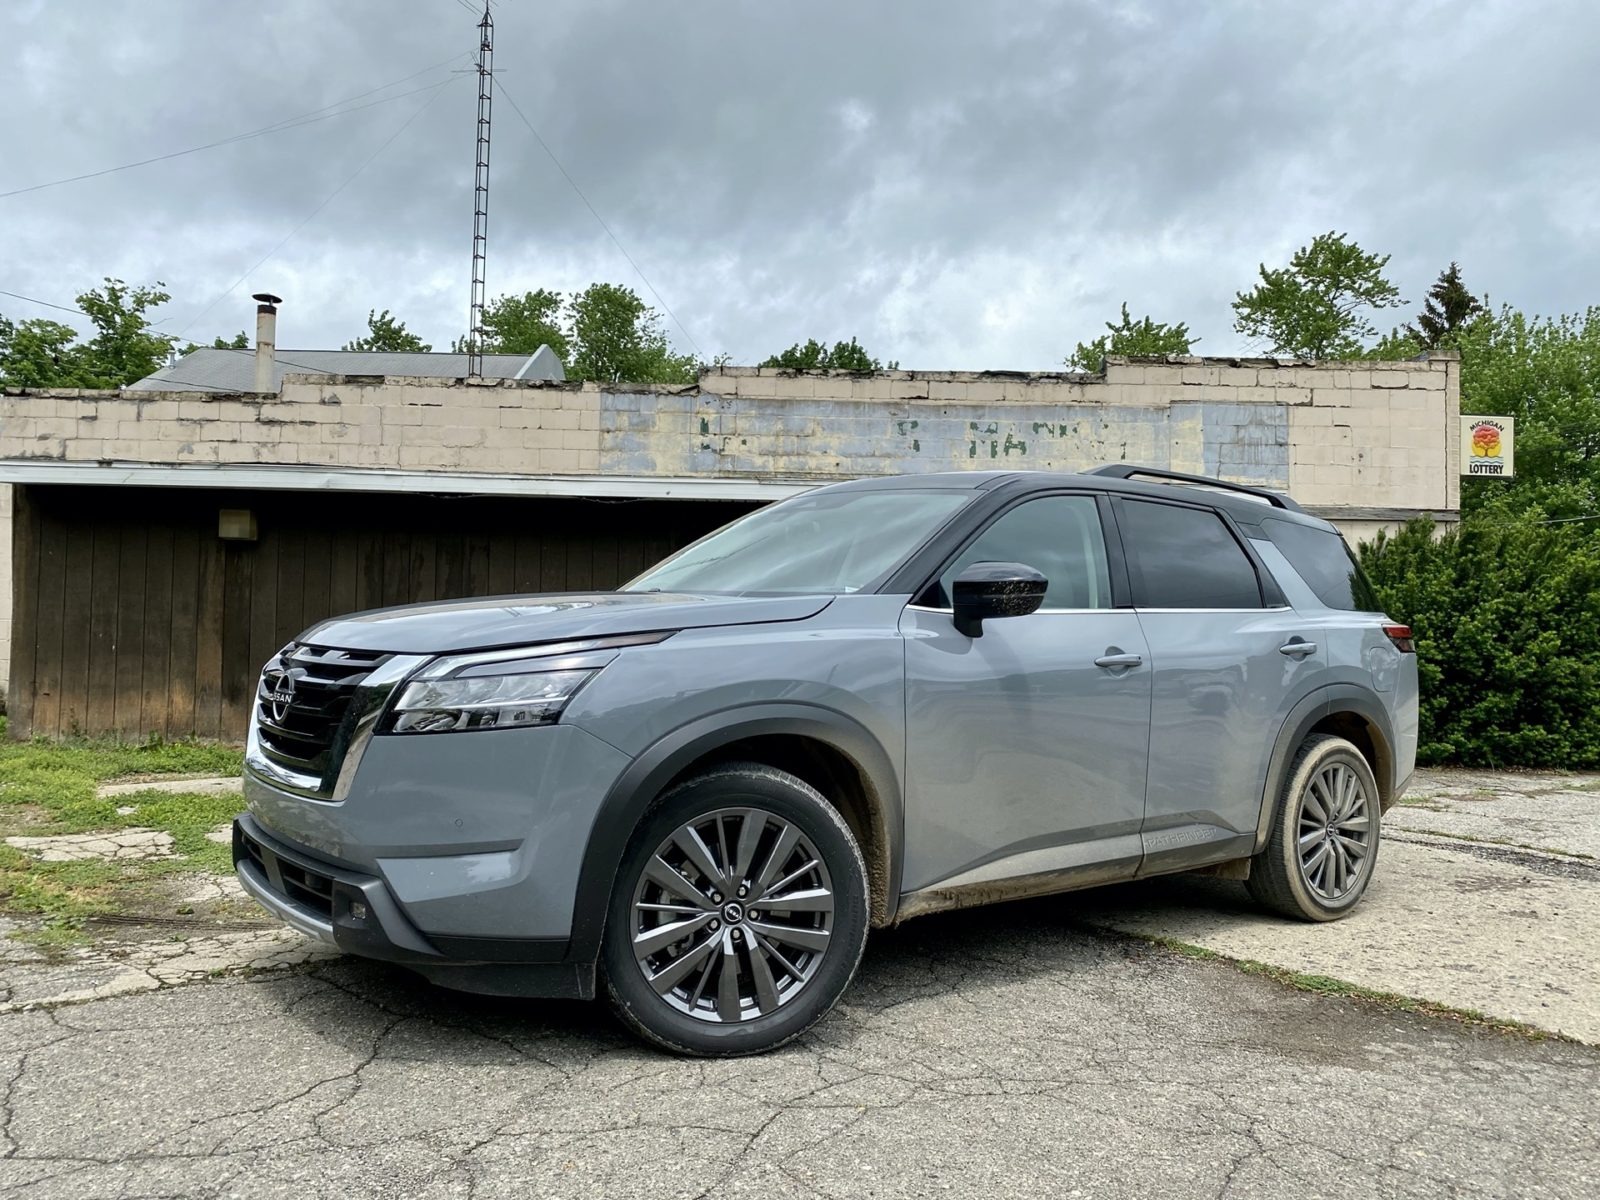 2022-nissan-pathfinder-tested,-2022-bmw-x3-previewed,-lordstown-motors-sputters:-what's-new-@-the-car-connection